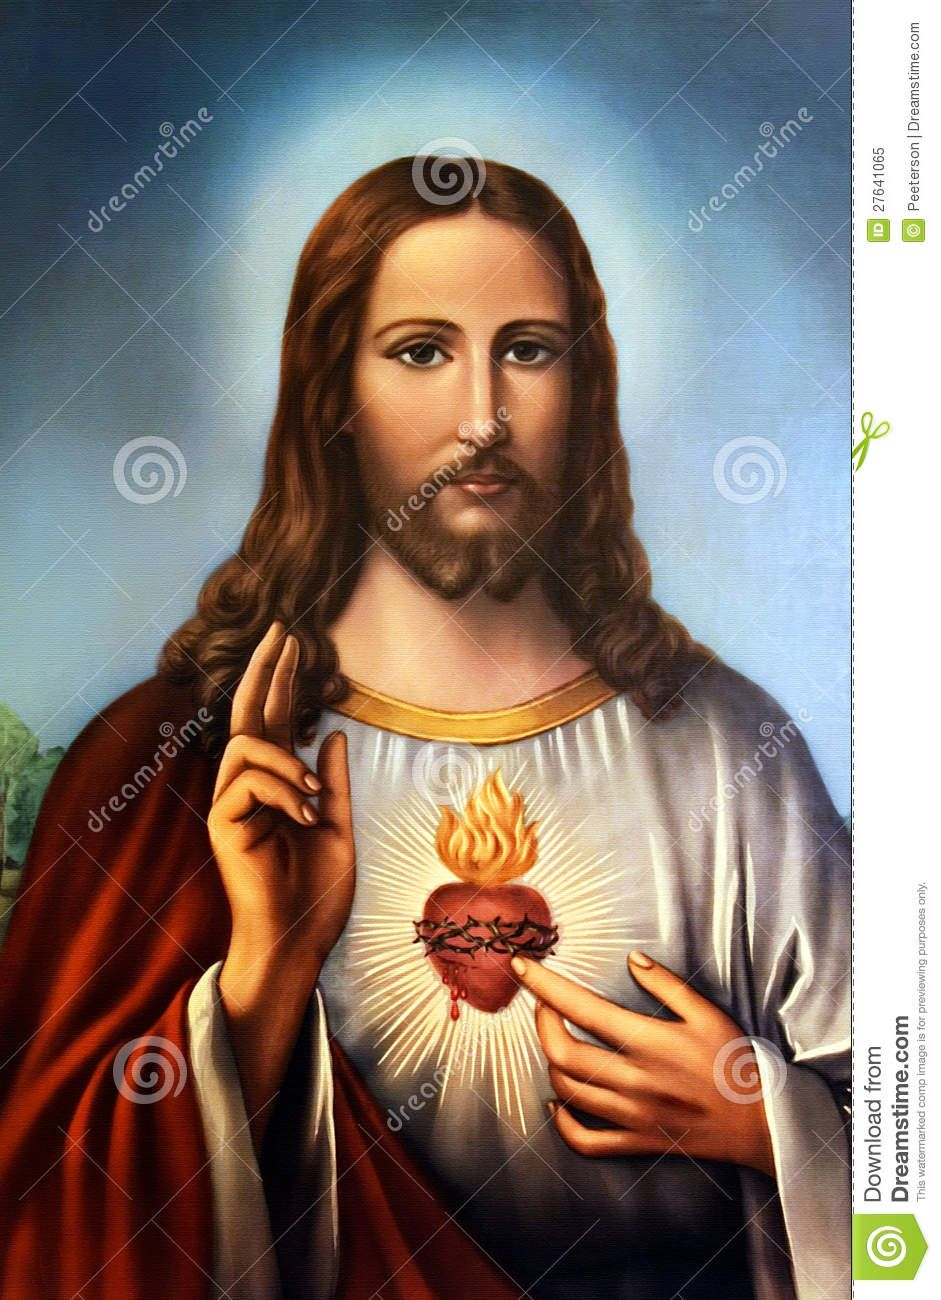 Jesus Christ Download From Over 54 Million High Quality Stock